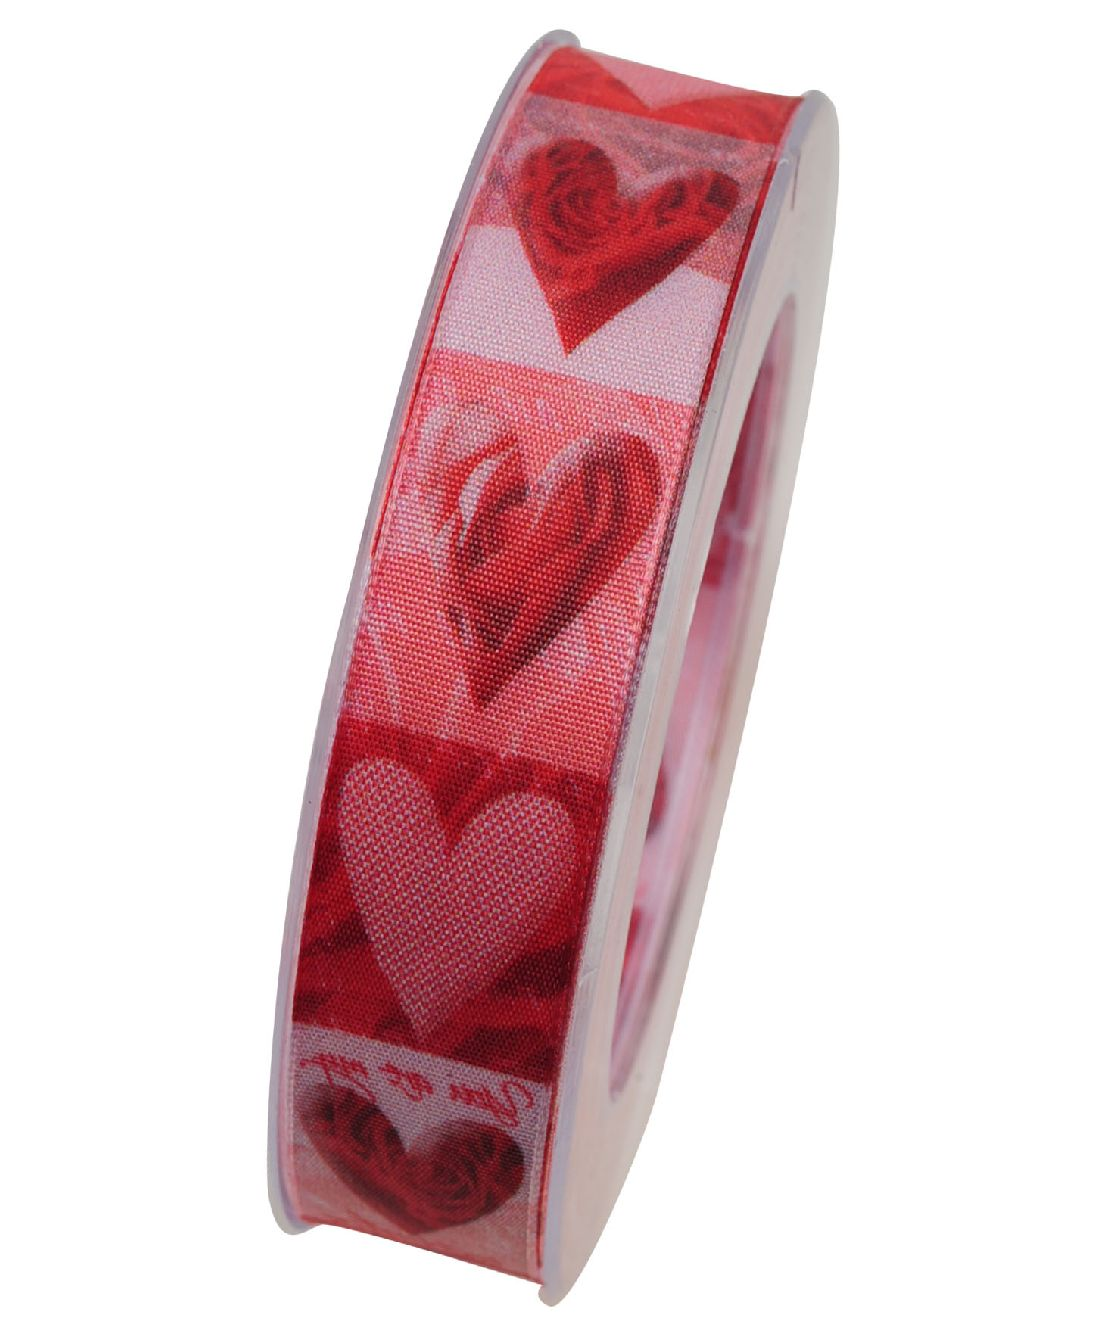 Band Kiss me / Herzband ROT mit formstabiler Kante 25mm 20Meter X564 20